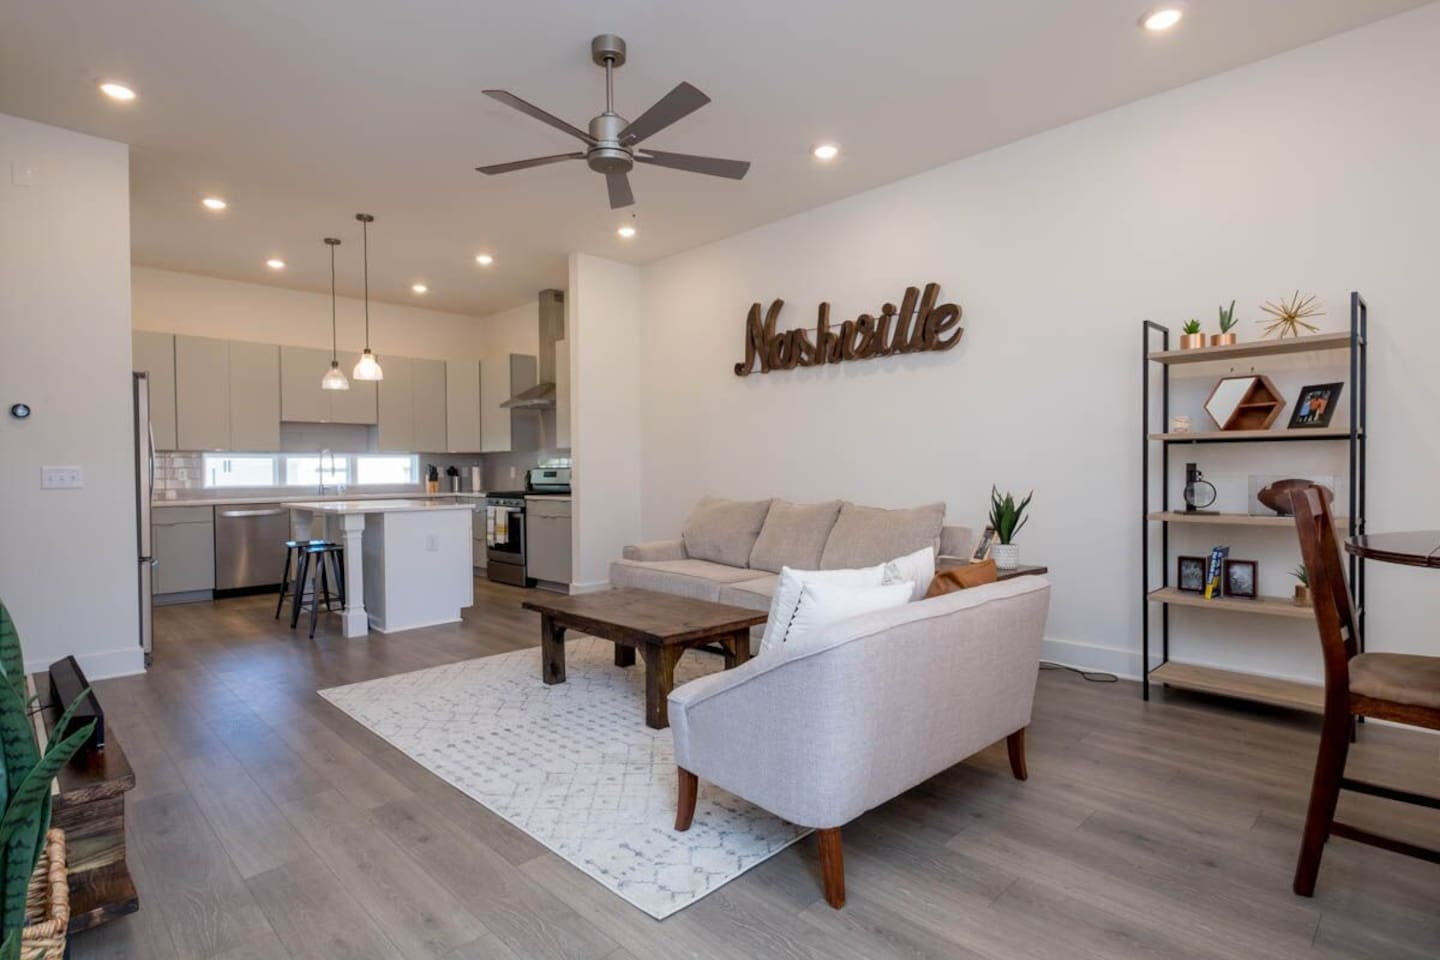 You'll be able to hang out and relax in the spacious living room. Whether you're looking to watch a movie and relax after a long day in Nashville or eat dinner and socialize, the living room is designed to accommodate everything needed for a trip to Nashville.